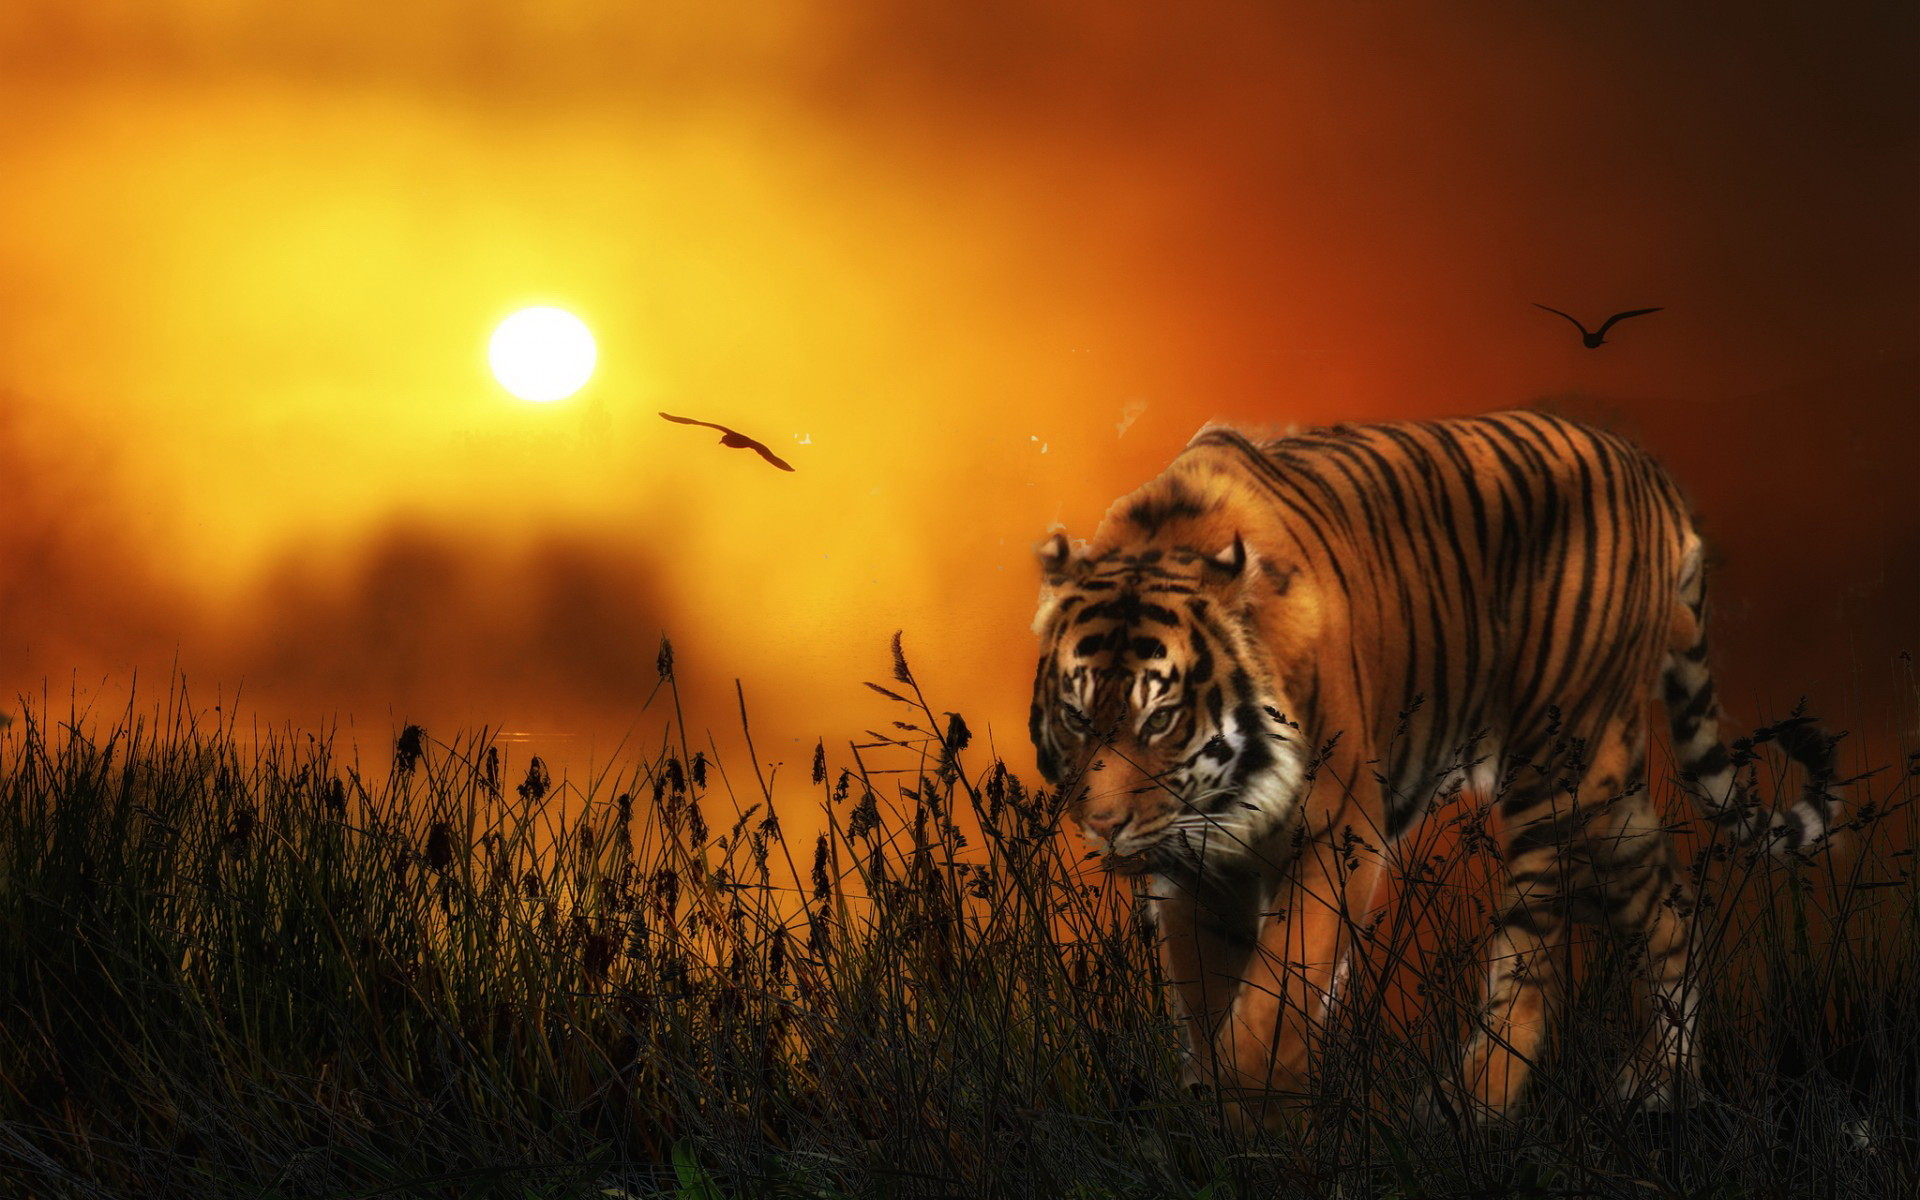 d Animated Tiger Wallpapers d wallpaper HD 1366×768 Tiger Picture Wallpapers  (33 Wallpapers